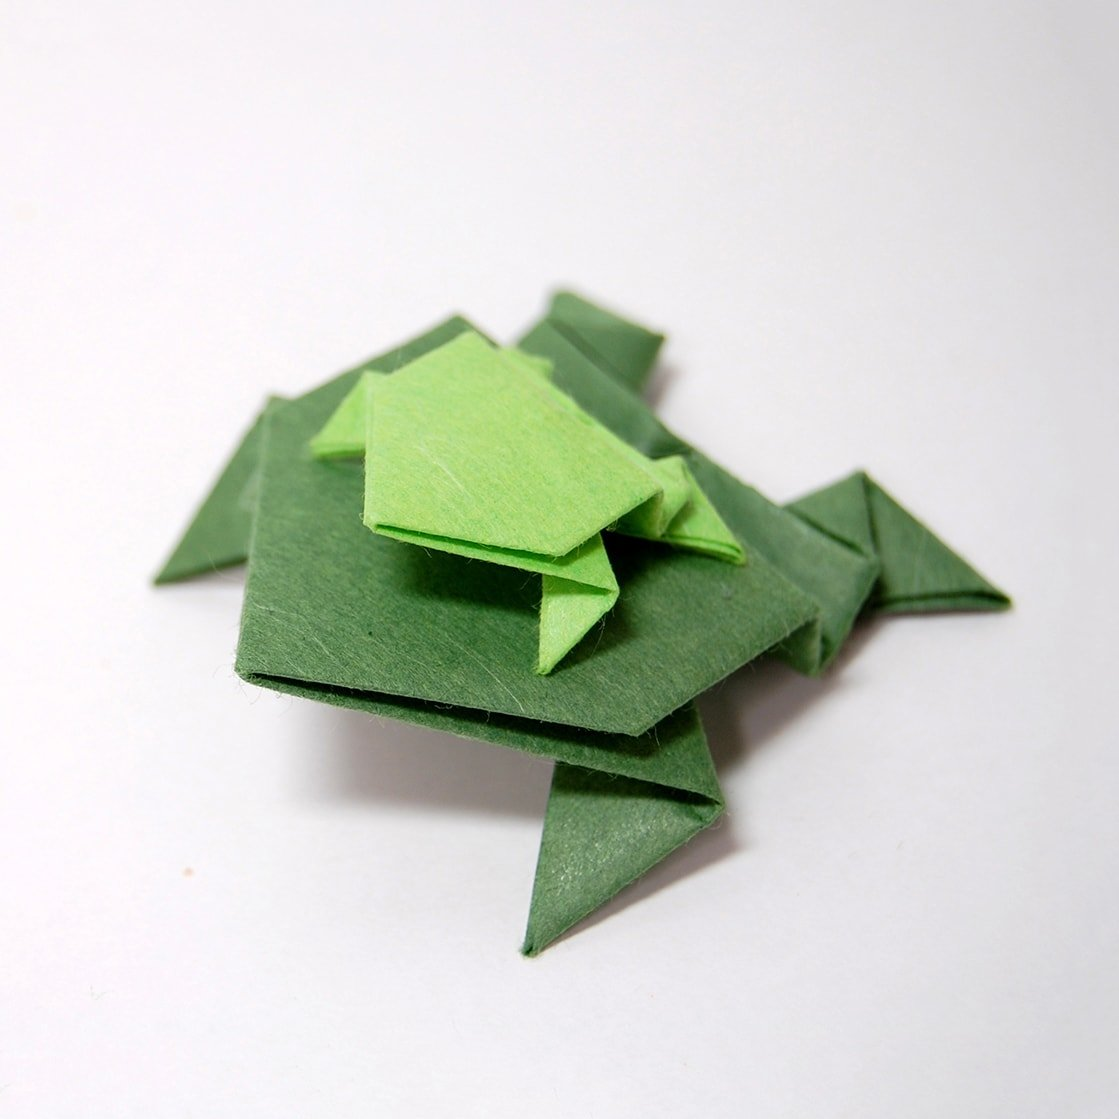 Origami Rabbit : 16 Steps (with Pictures) - Instructables | 1119x1119